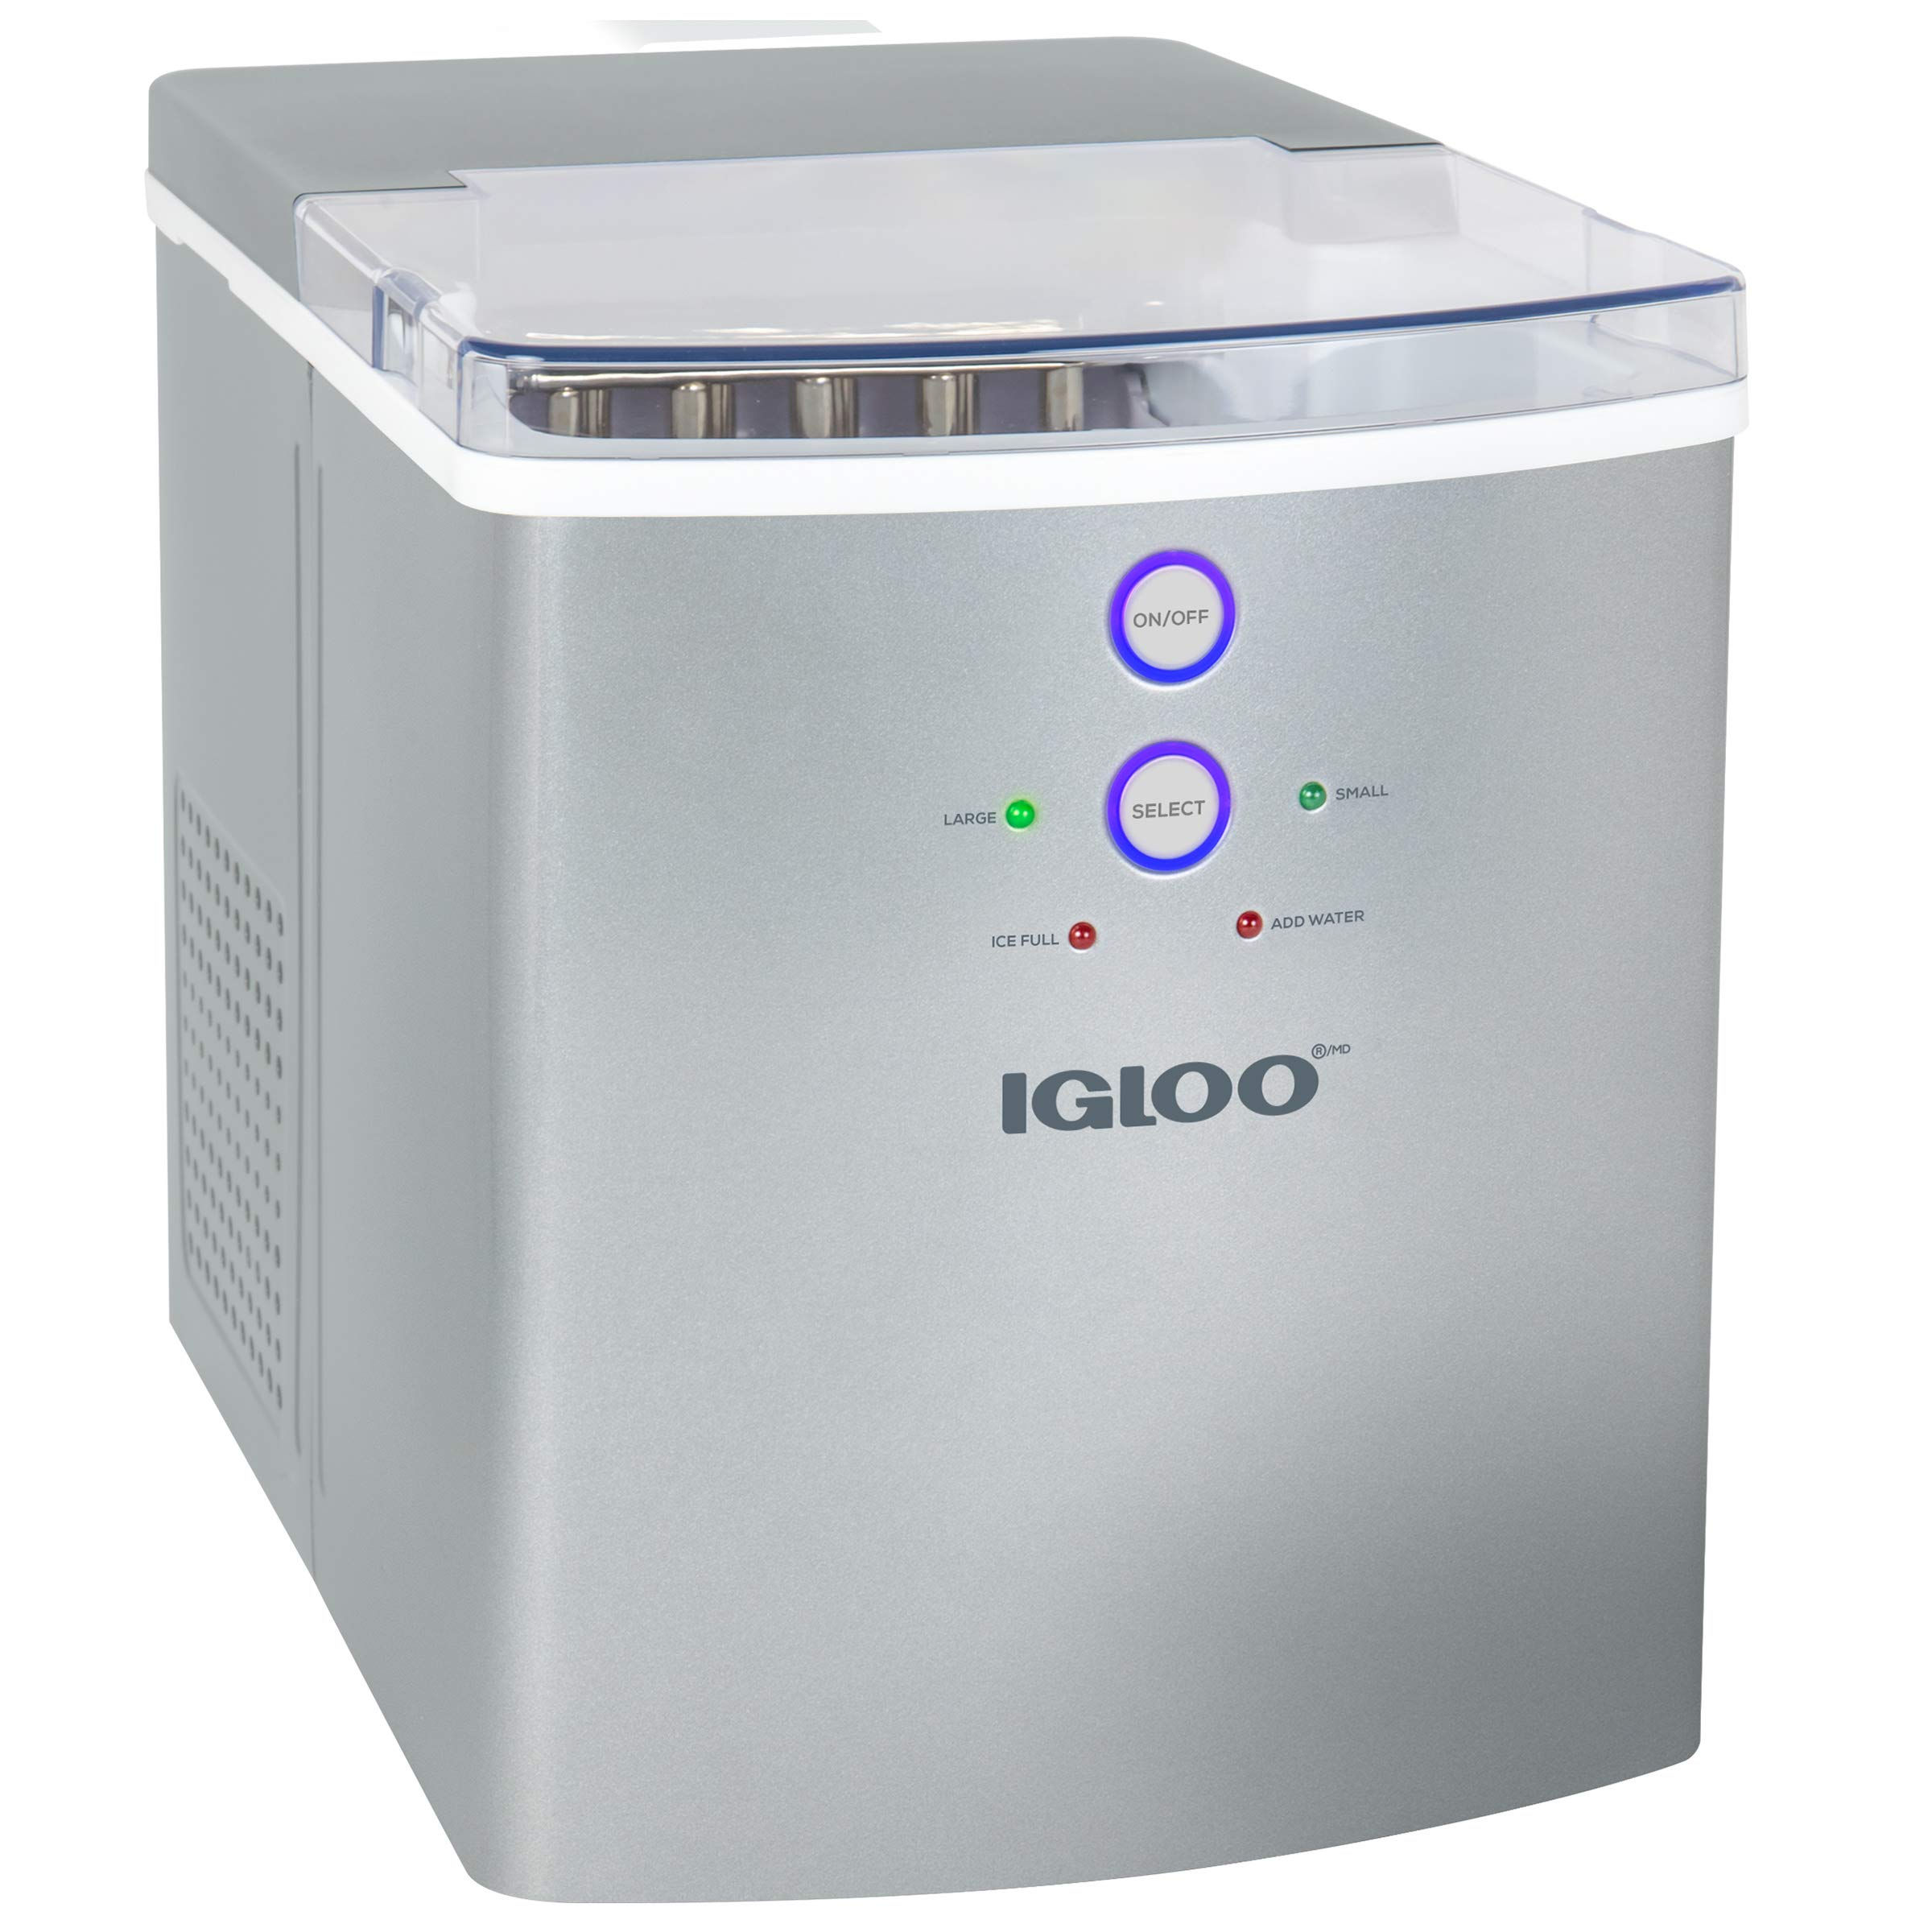 Igloo ICEB33SL 33-Pound Automatic Portable Countertop Ice Maker Machine, Silver